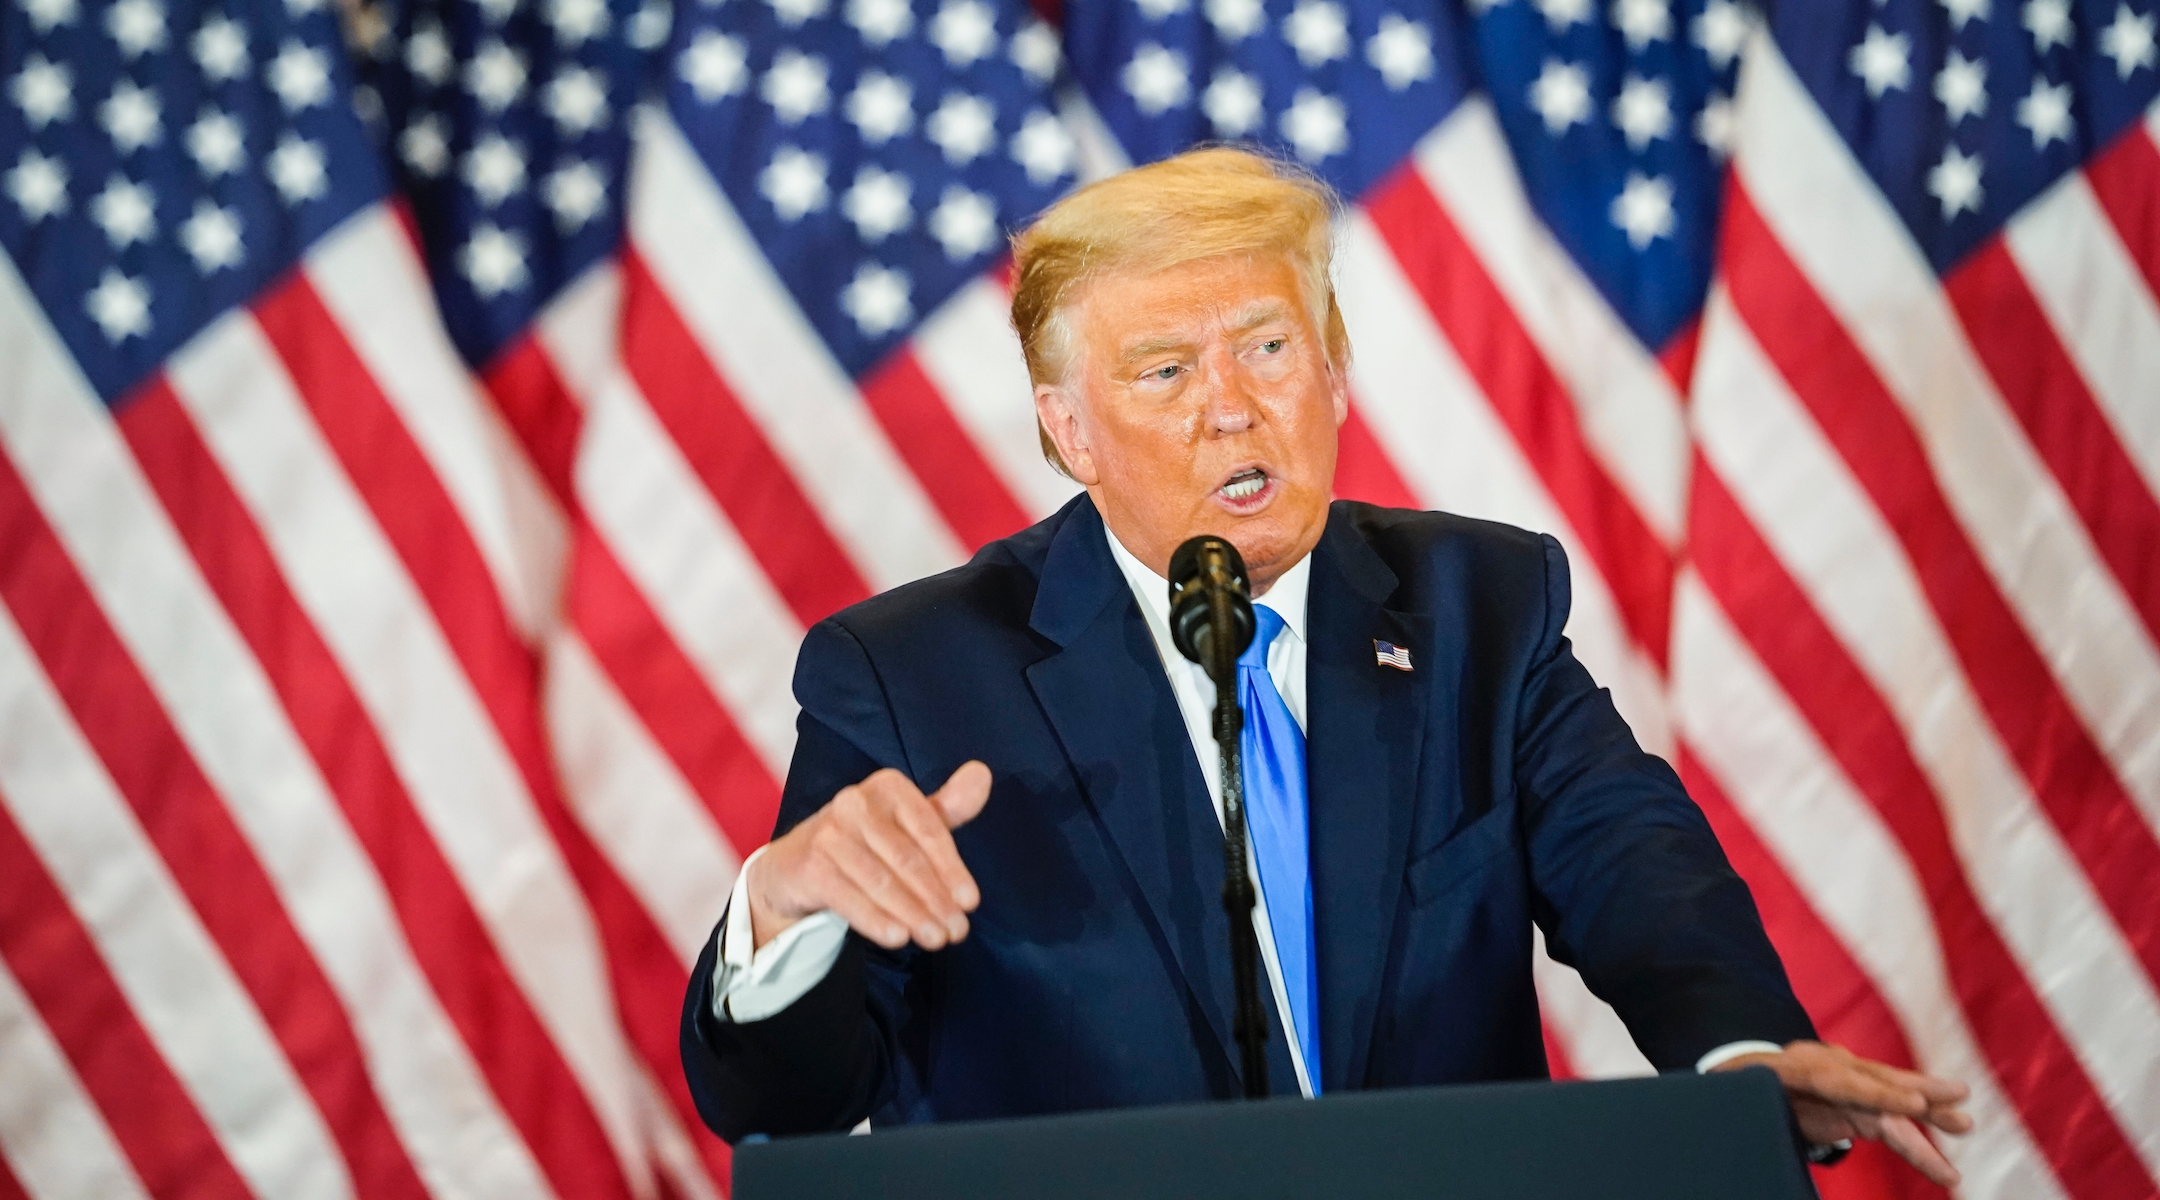 Donald Trump says American Jews 'don't love Israel enough' and more should have voted for...